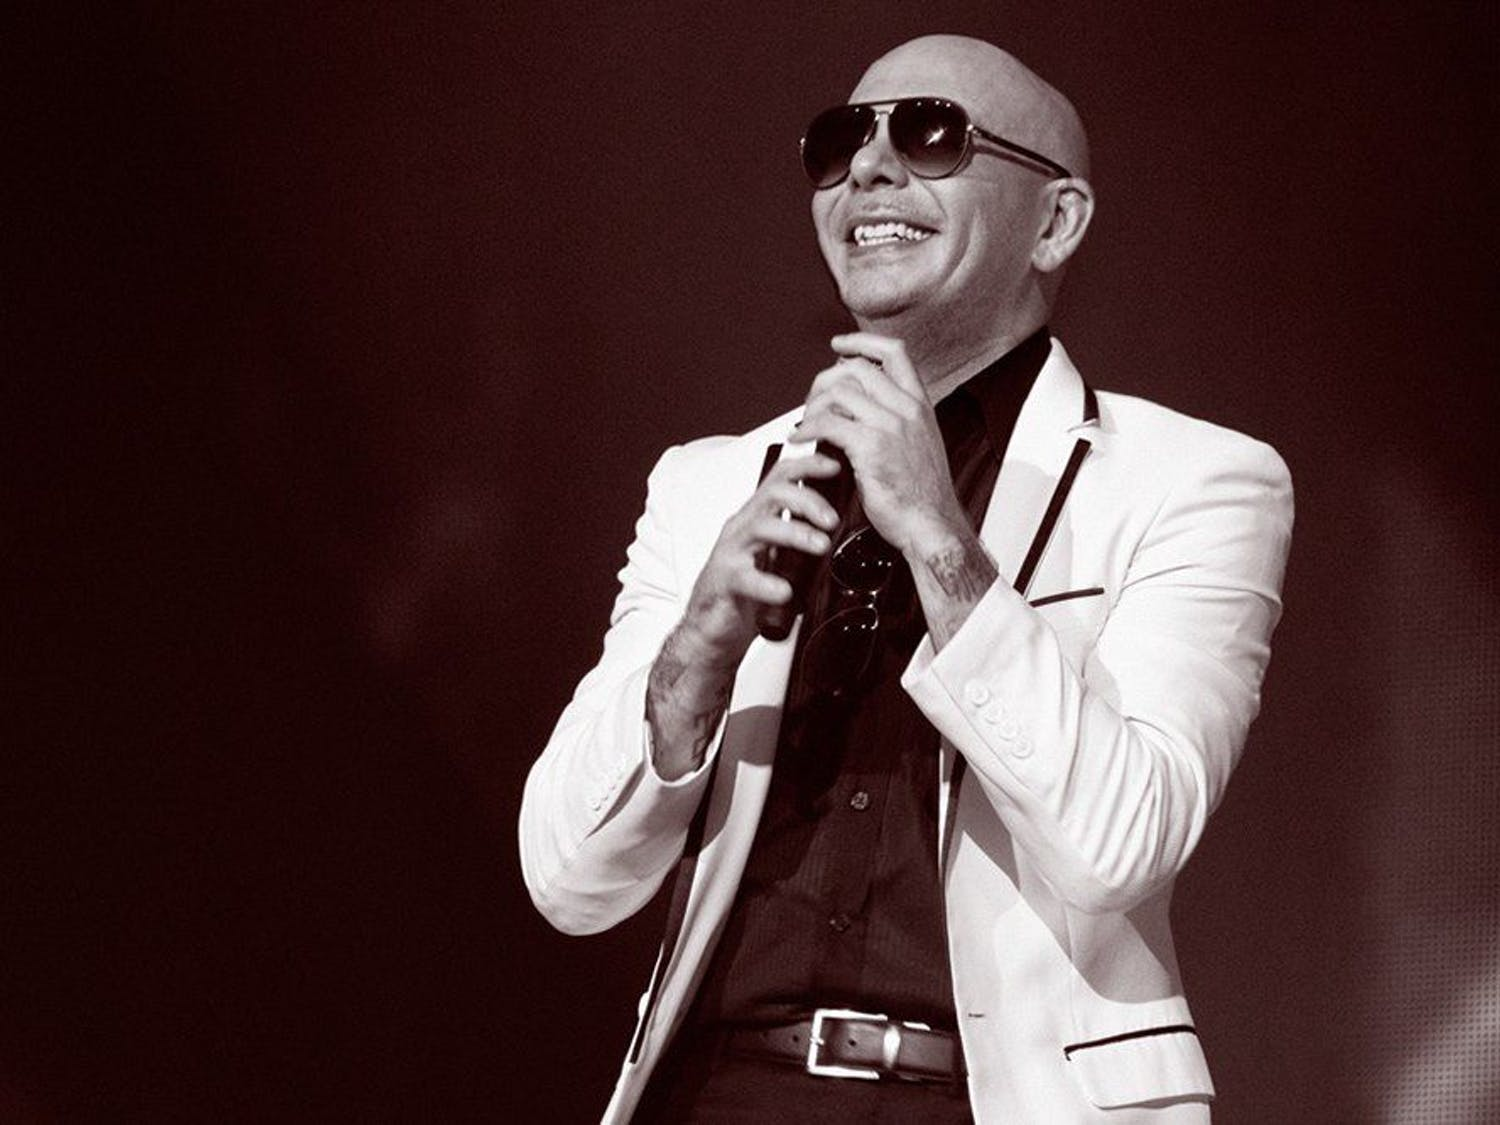 Armando Christian Pérez, better known asPitbull will speak at UF on Oct. 2 for anACCENT Speakers Bureau for Hispanic Heritage Month.Free student tickets are available for pick up on Sept. 28 and Oct. 2.